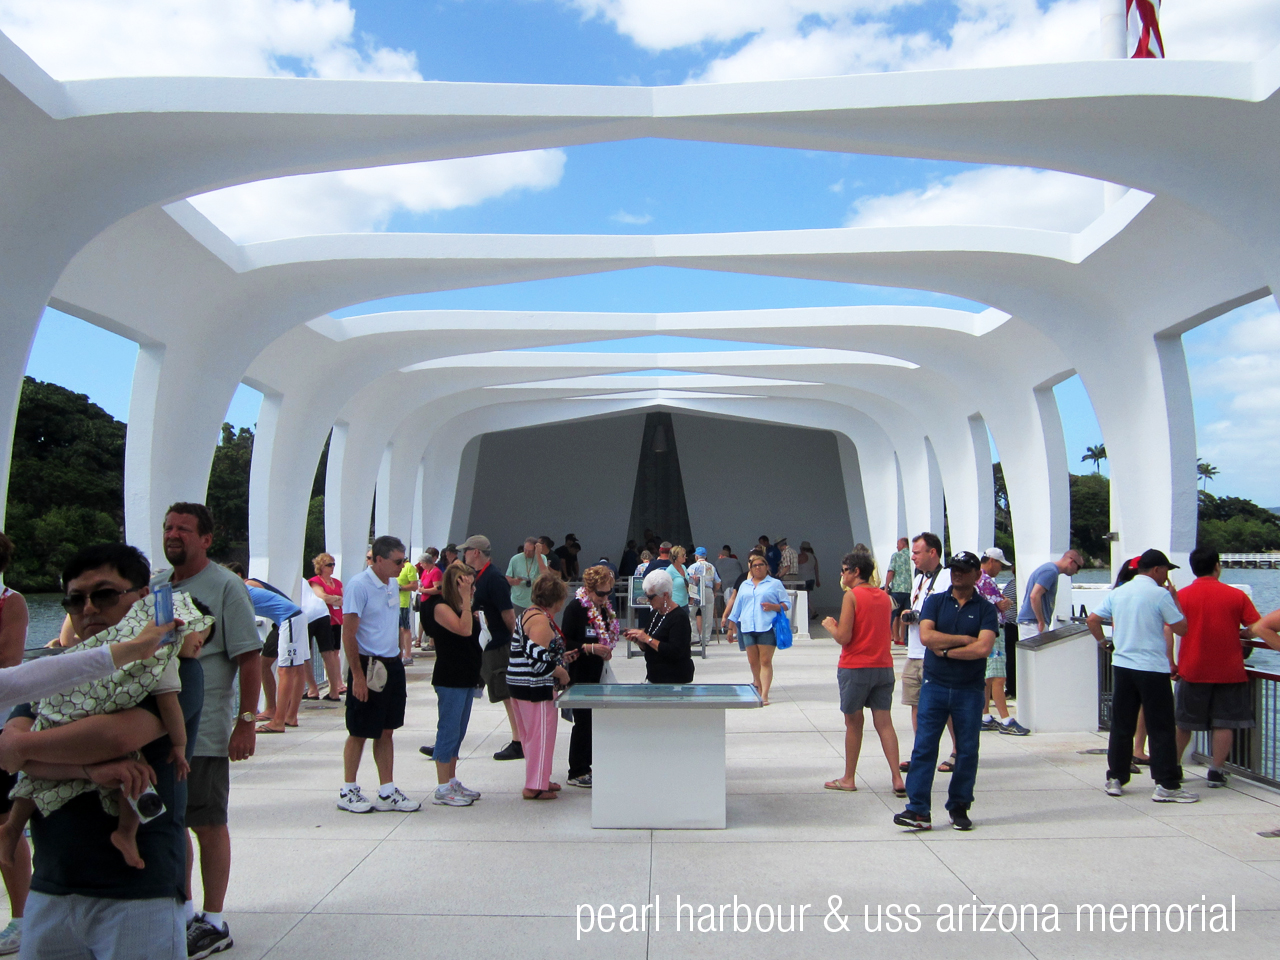 We decided to visit Pearl Harbour as we had a free day during our trip. The USS Arizona Memorial was a really beautiful piece of architecture, set out on the water above where the ship sank and still remains to this day.